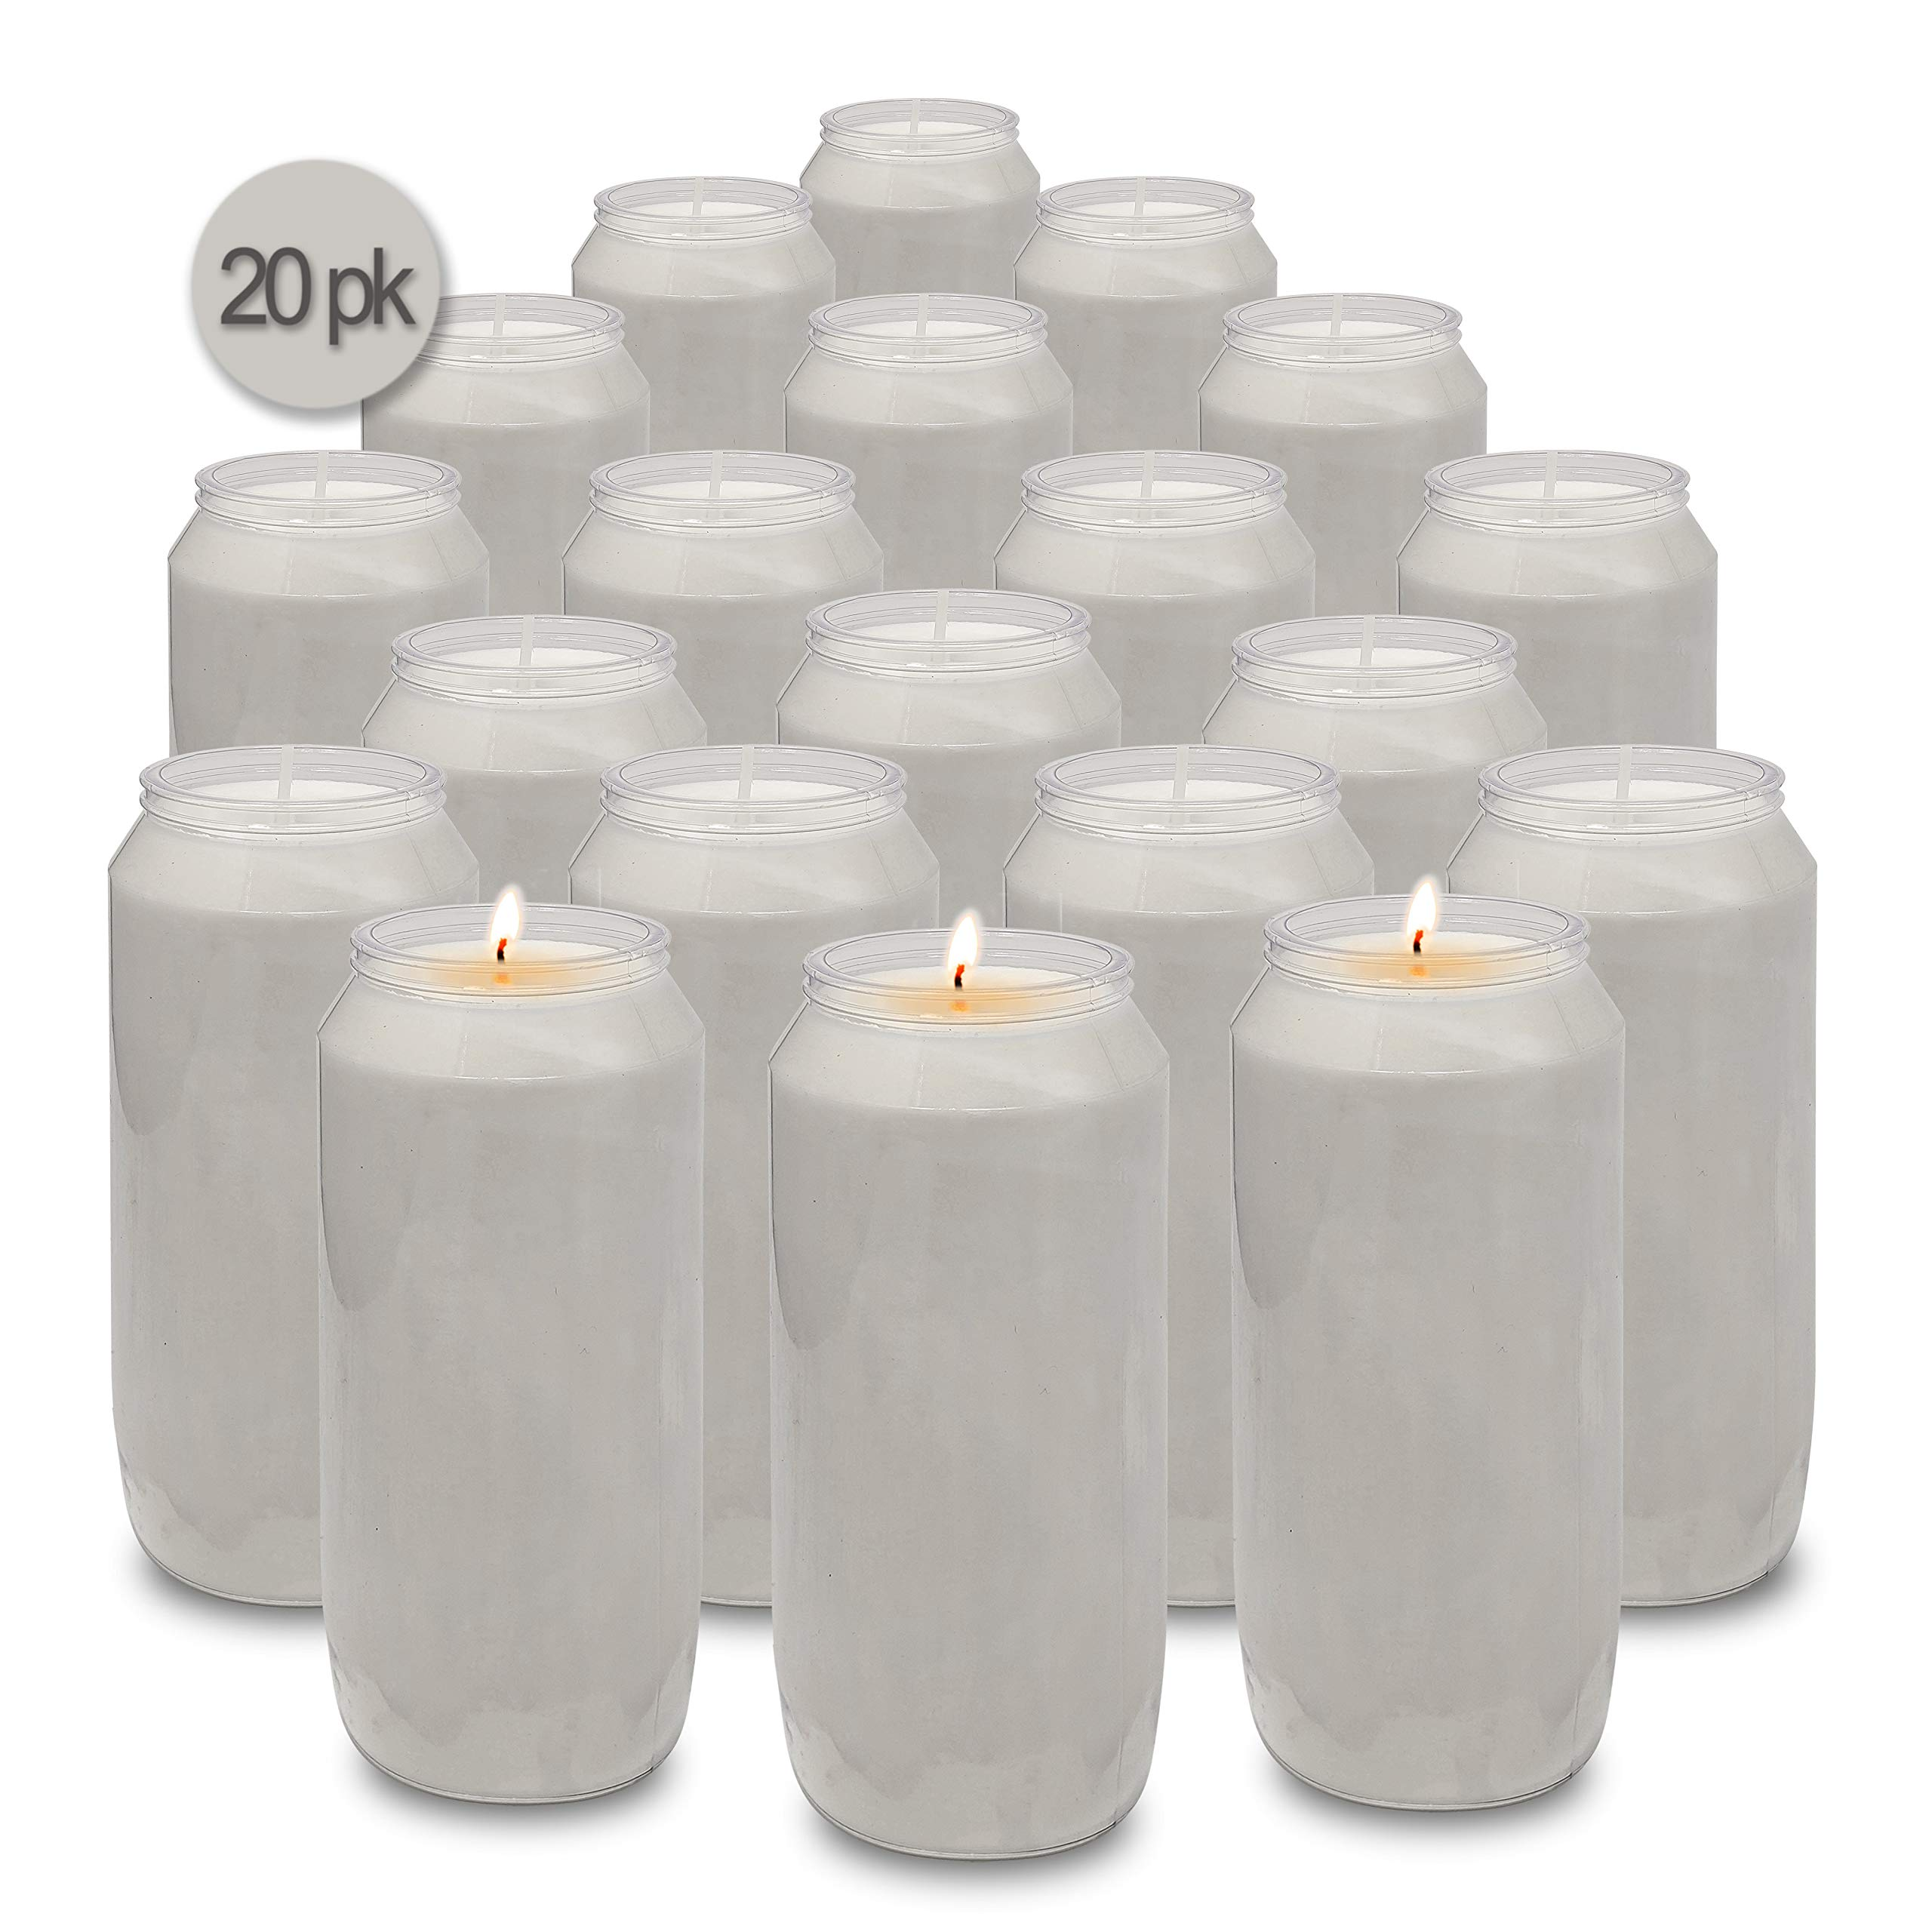 Hyoola 7 Day White Prayer Candles, 20 Pack - 6'' Tall Pillar Candles for Religious, Memorial, Party Decor, Vigil and Emergency Use - Vegetable Oil Wax in Plastic Jar Container by Hyoola